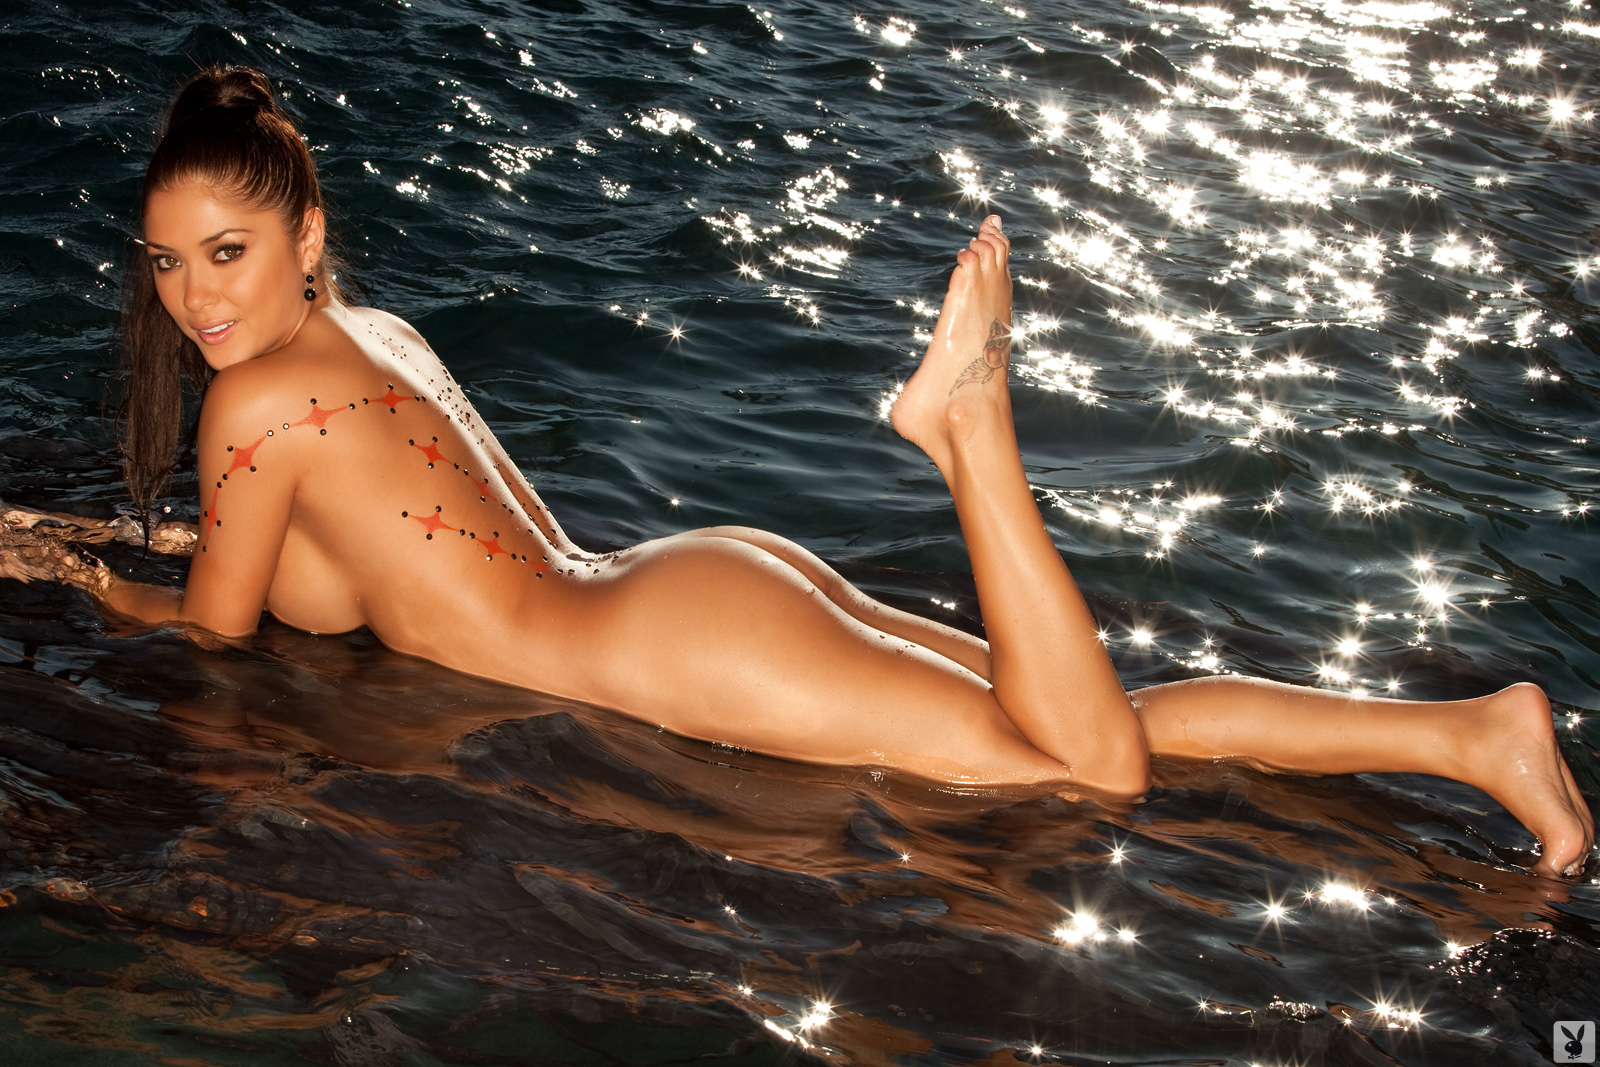 arianny celeste nude photos